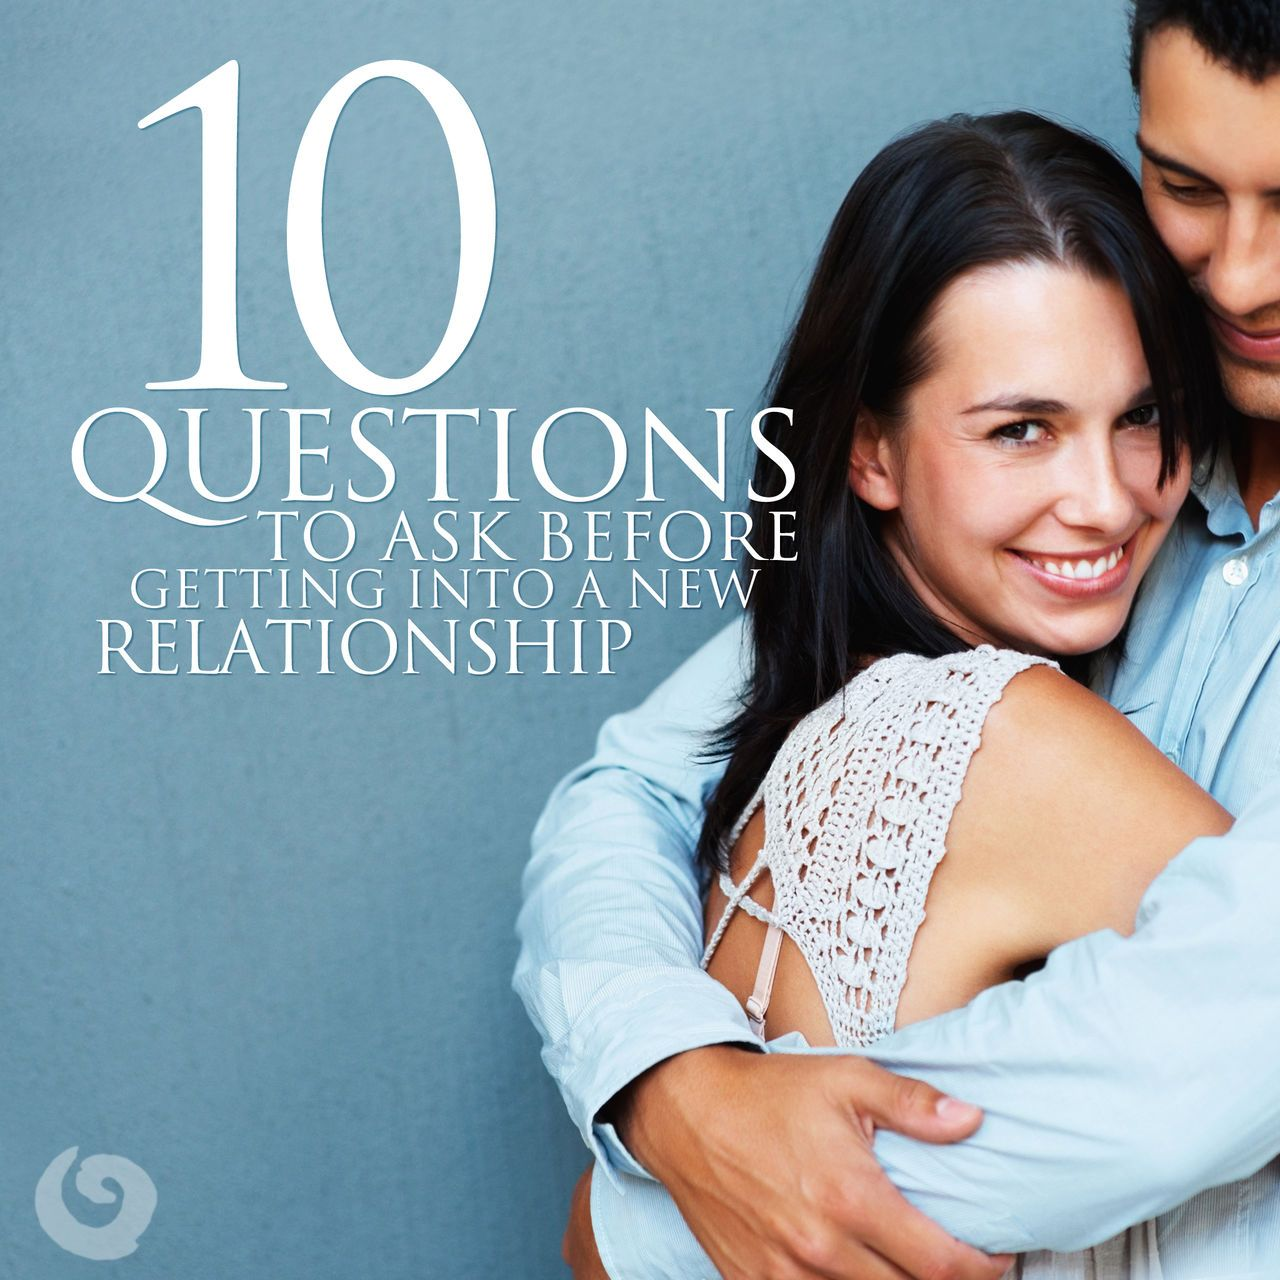 10 Questions to Ask Before Getting into a New Relationship